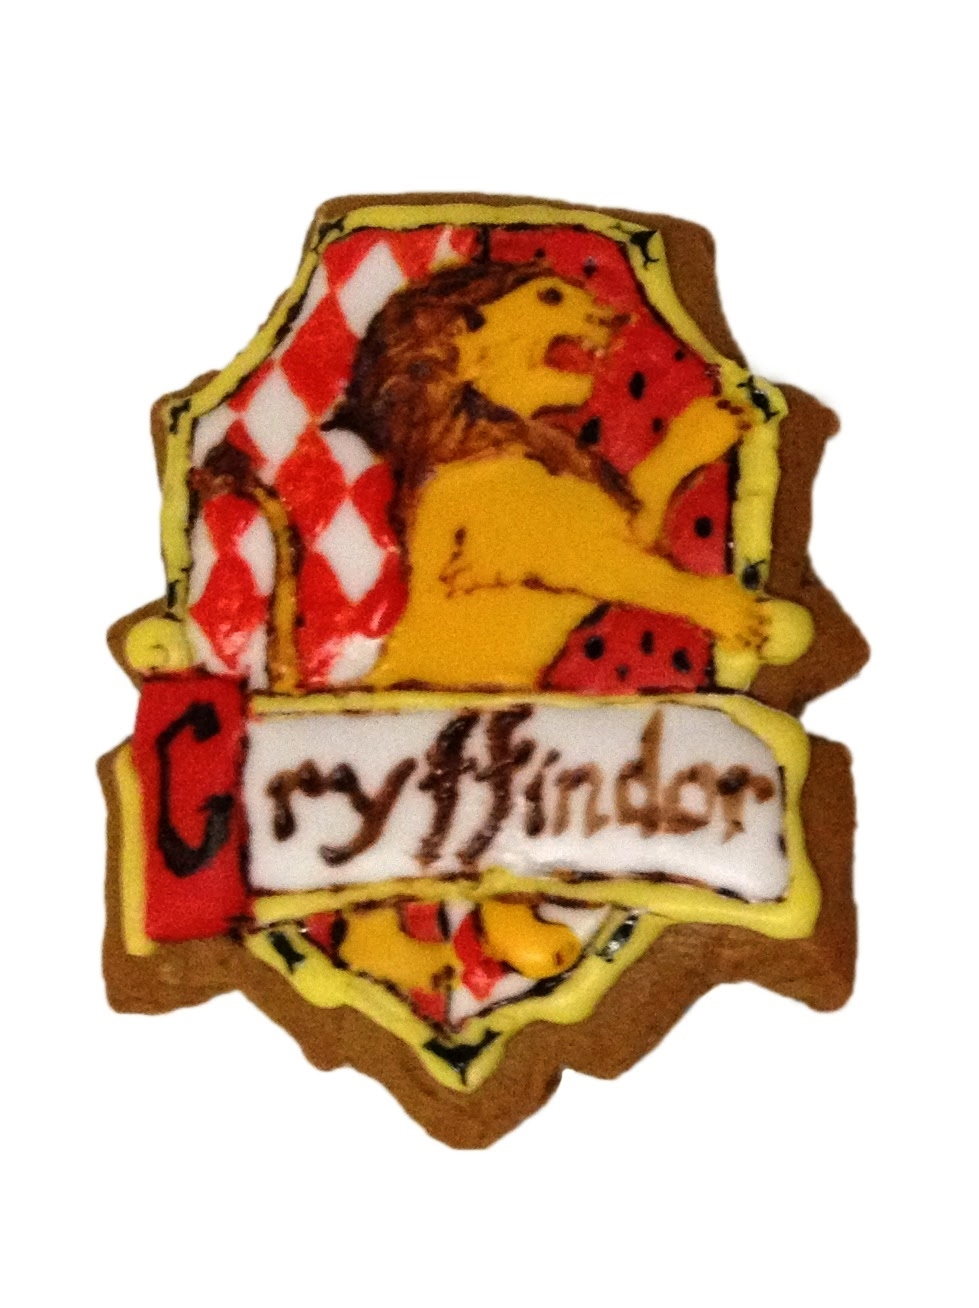 Gryffindor house gingerbread cookie with hand-painted royal icing